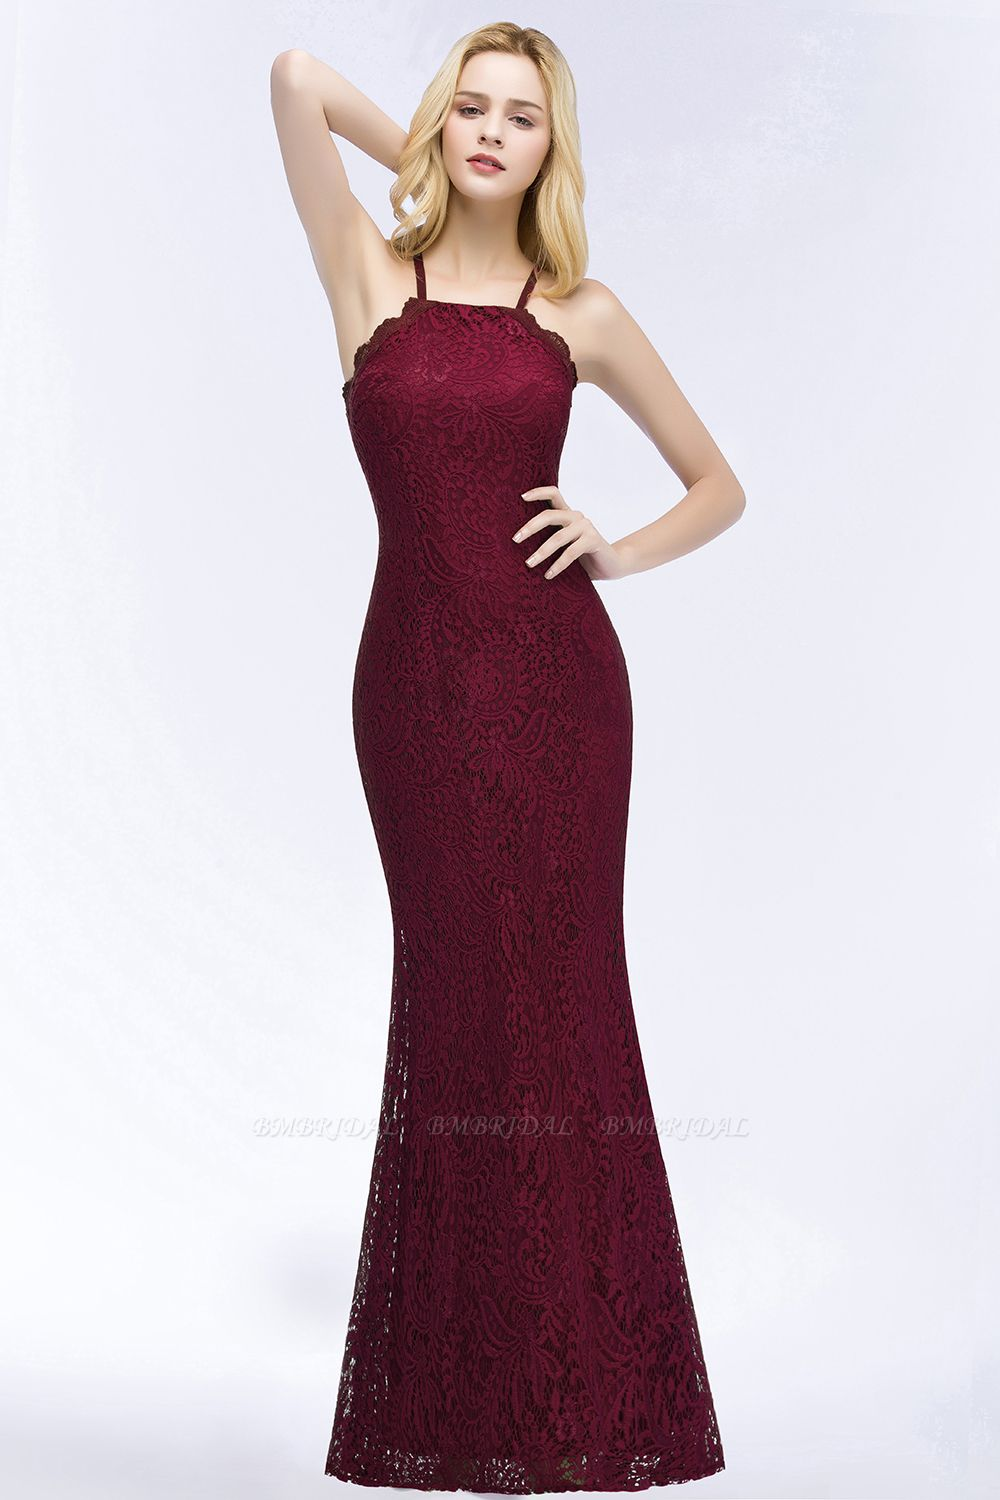 Sexy Mermaid Lace Long Burgundy Bridesmaid Dresses with Crisscross Back